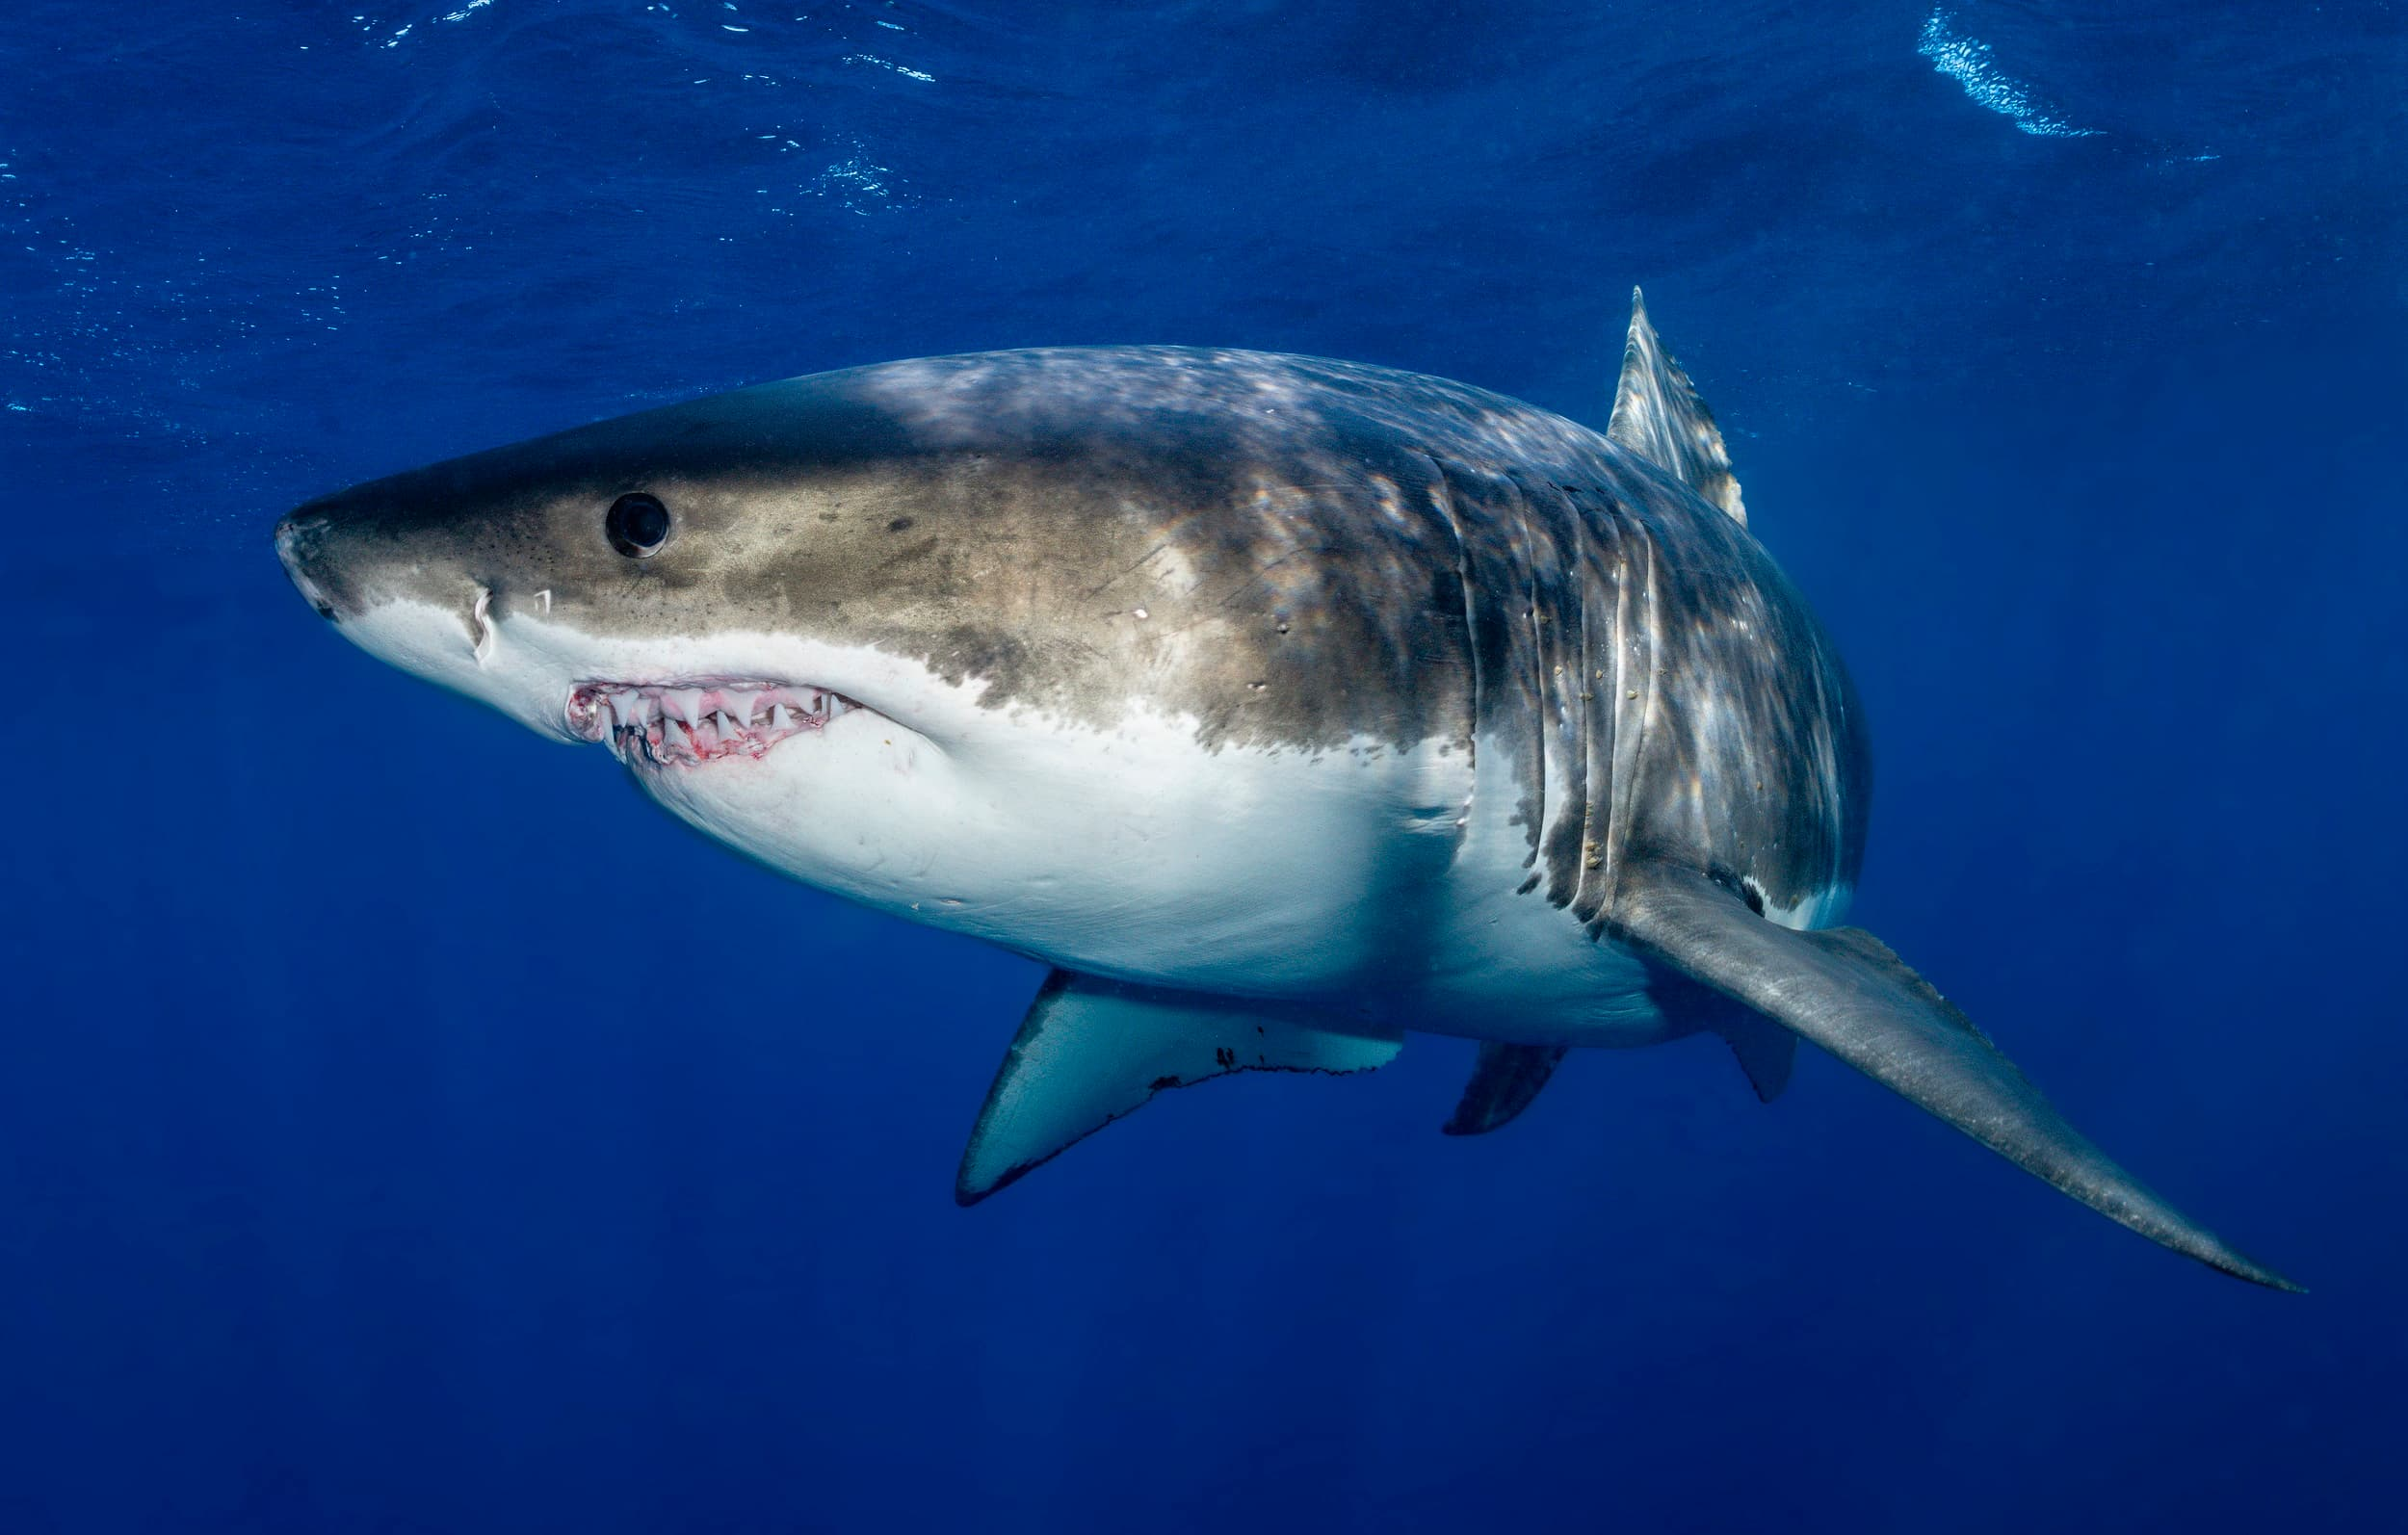 Great white shark patrols near the cage